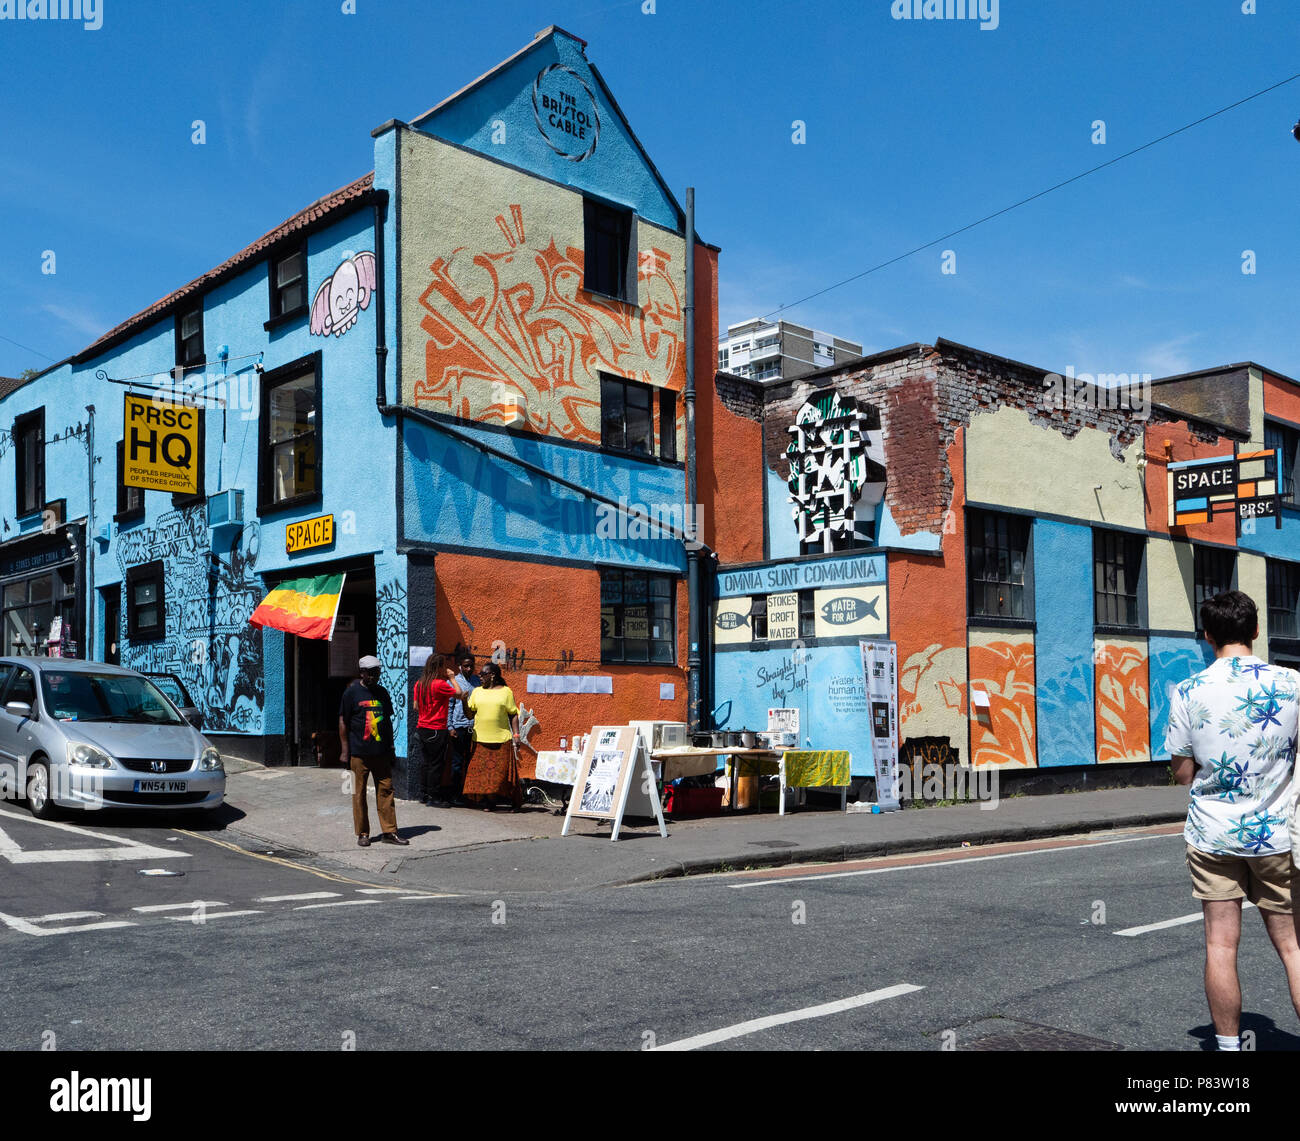 Colourful corner of Bristol at the Peoples Republic of Stokes Croft PRSC  HQ cafe and bar - Stock Image